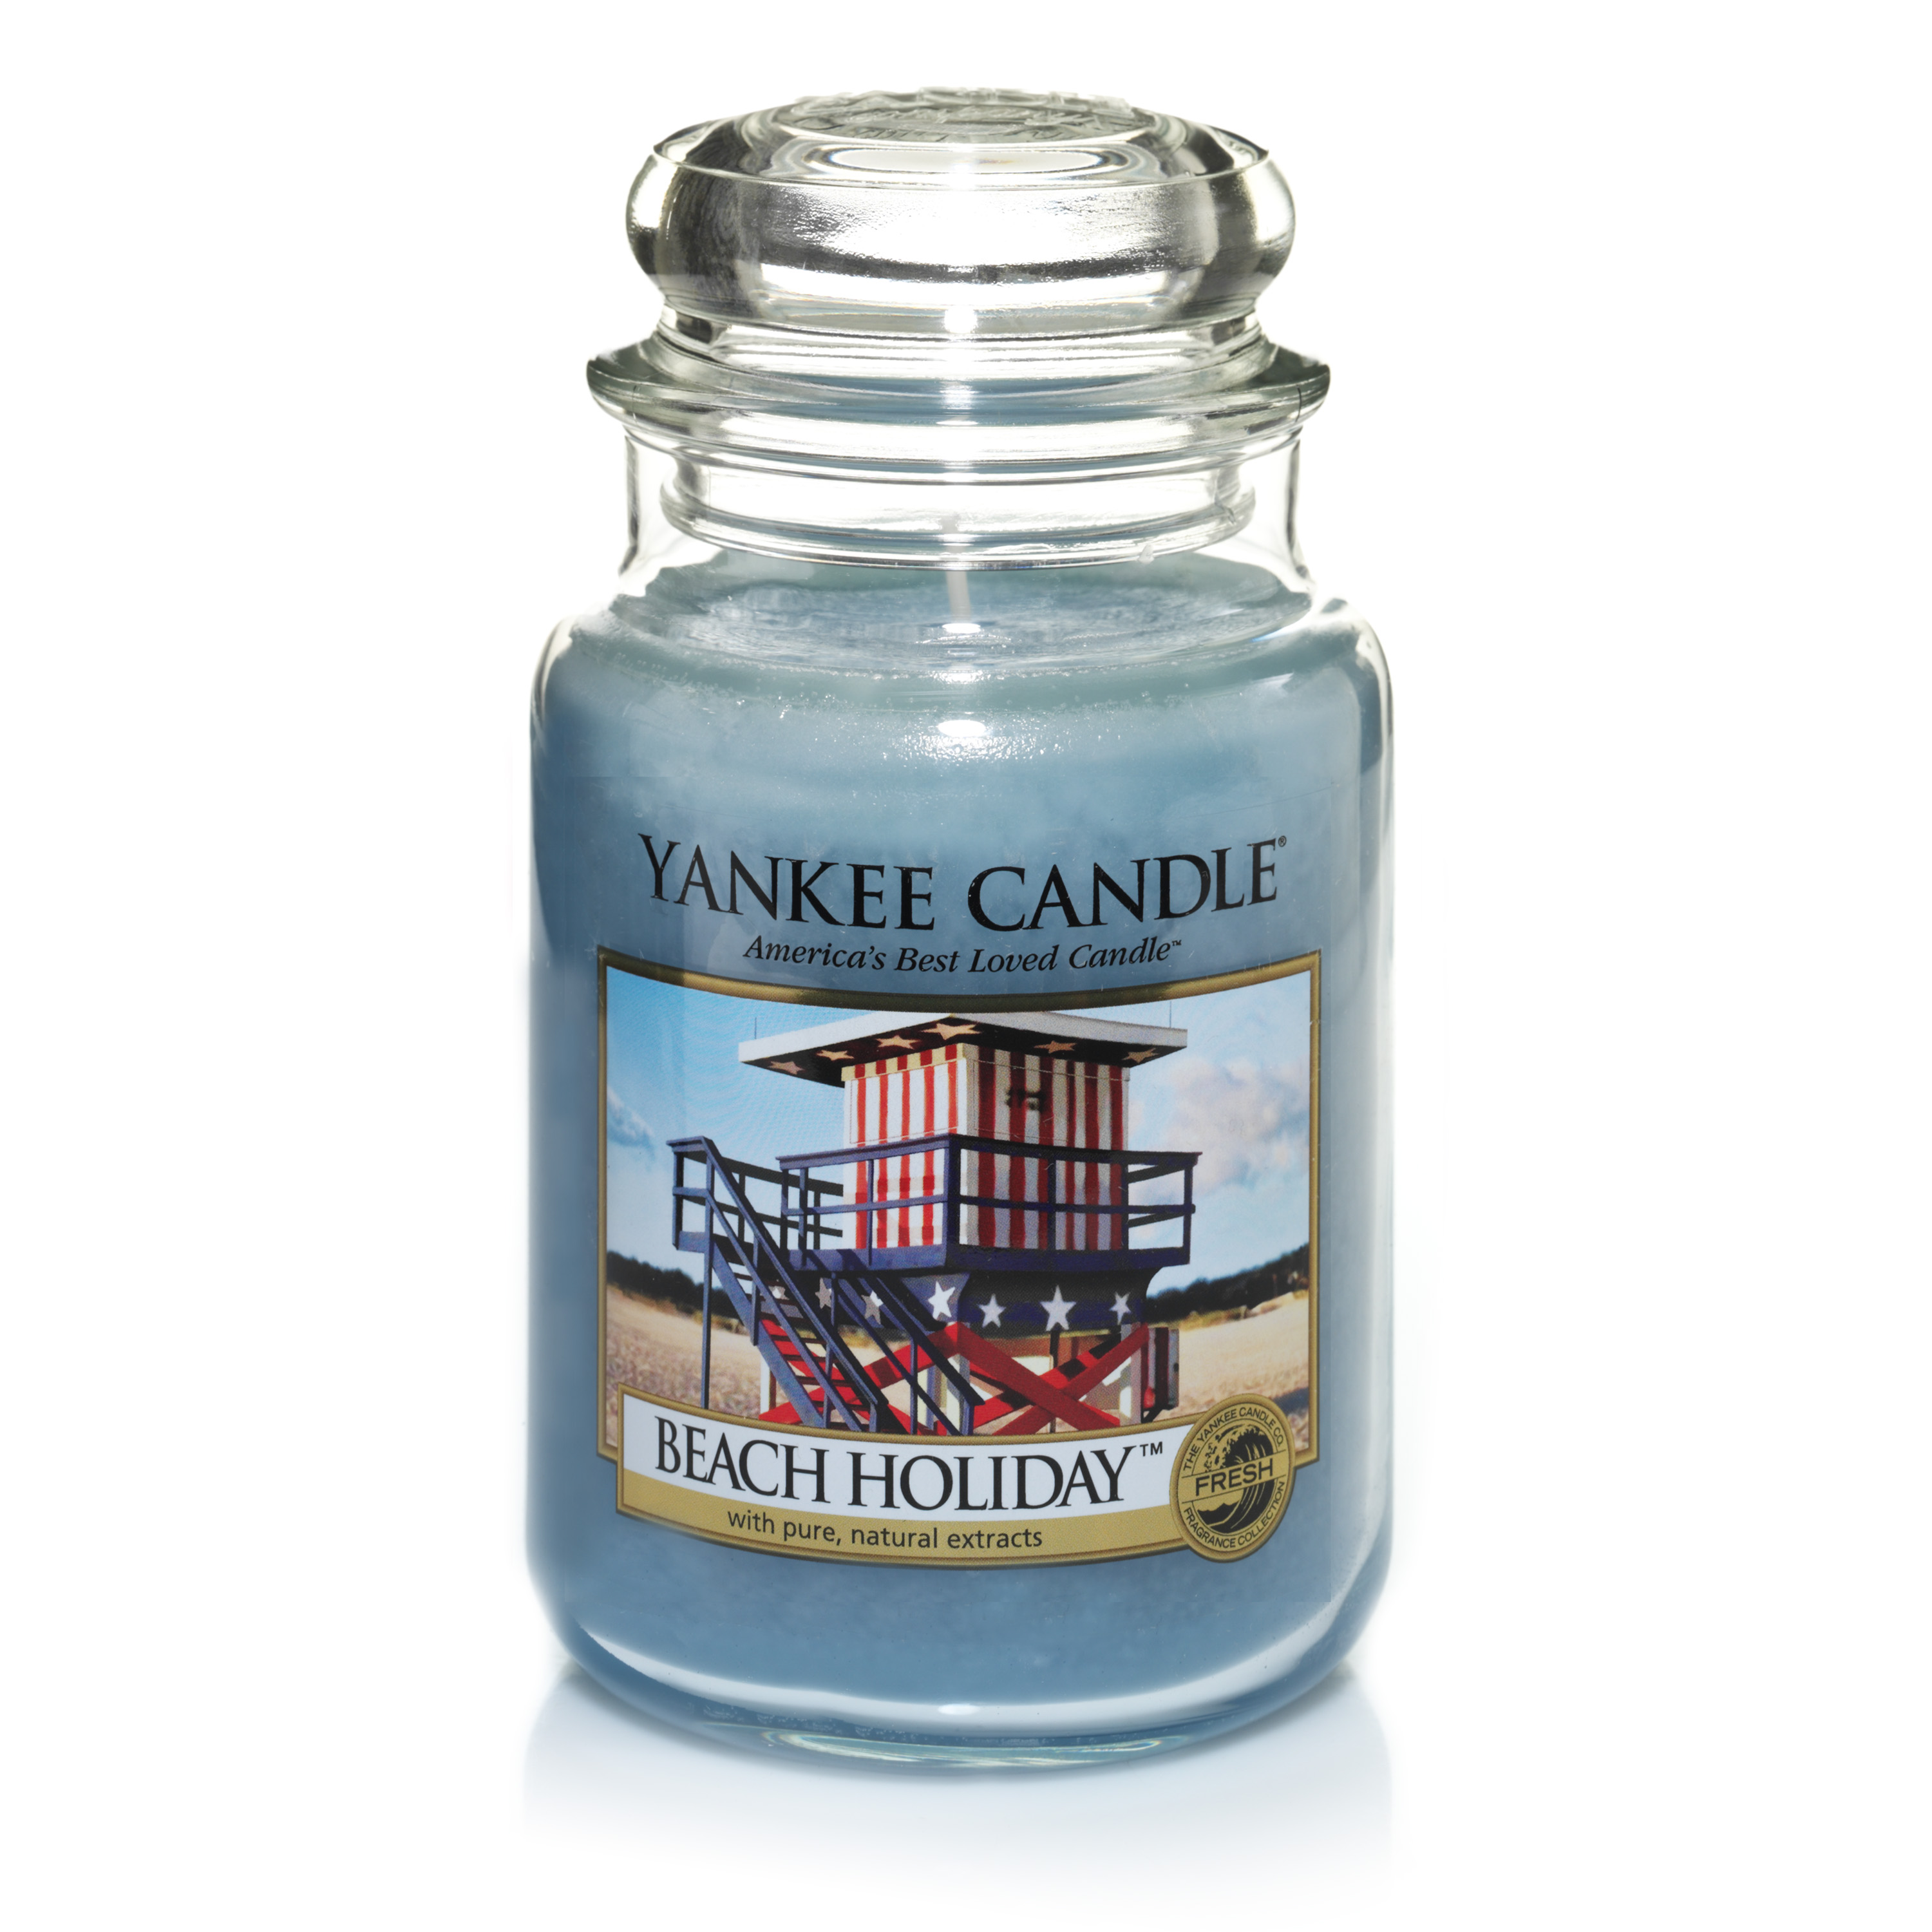 Beach Holiday candle